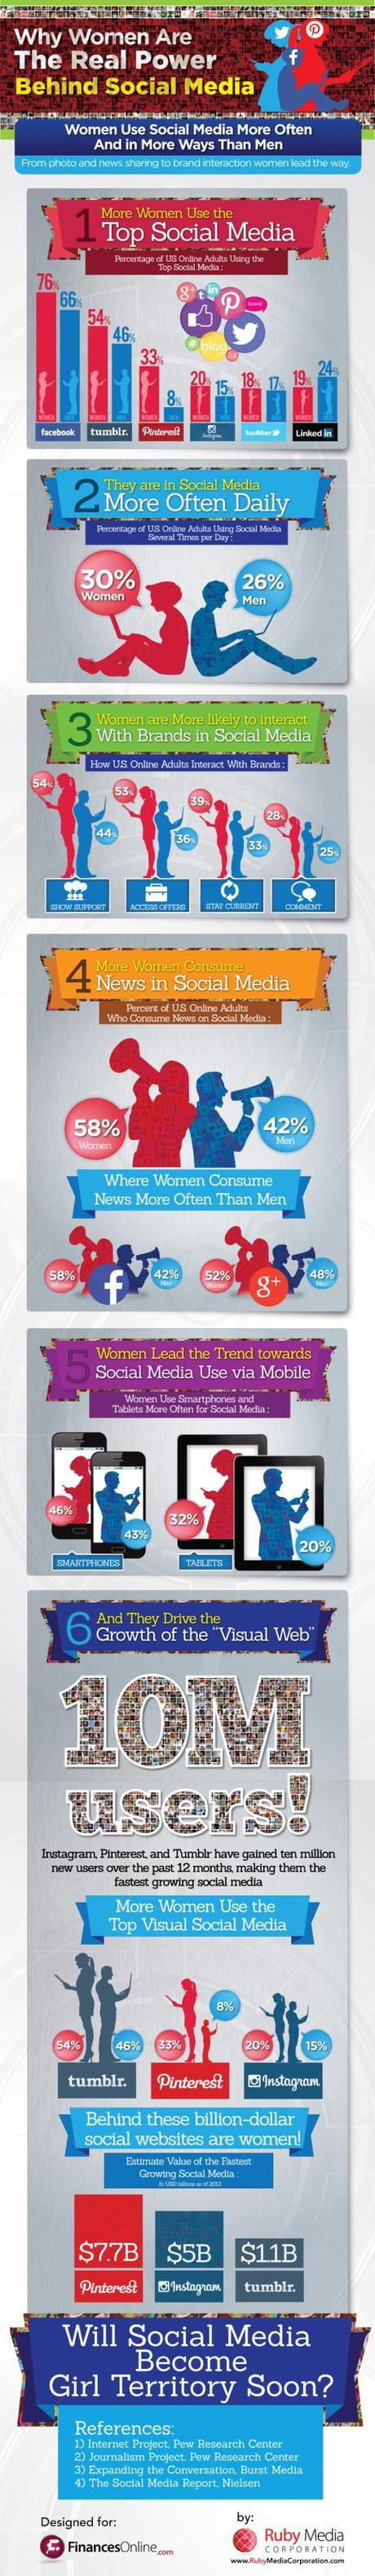 1393972619-women-dominate-every-social-media-network-except-one-infographic-1